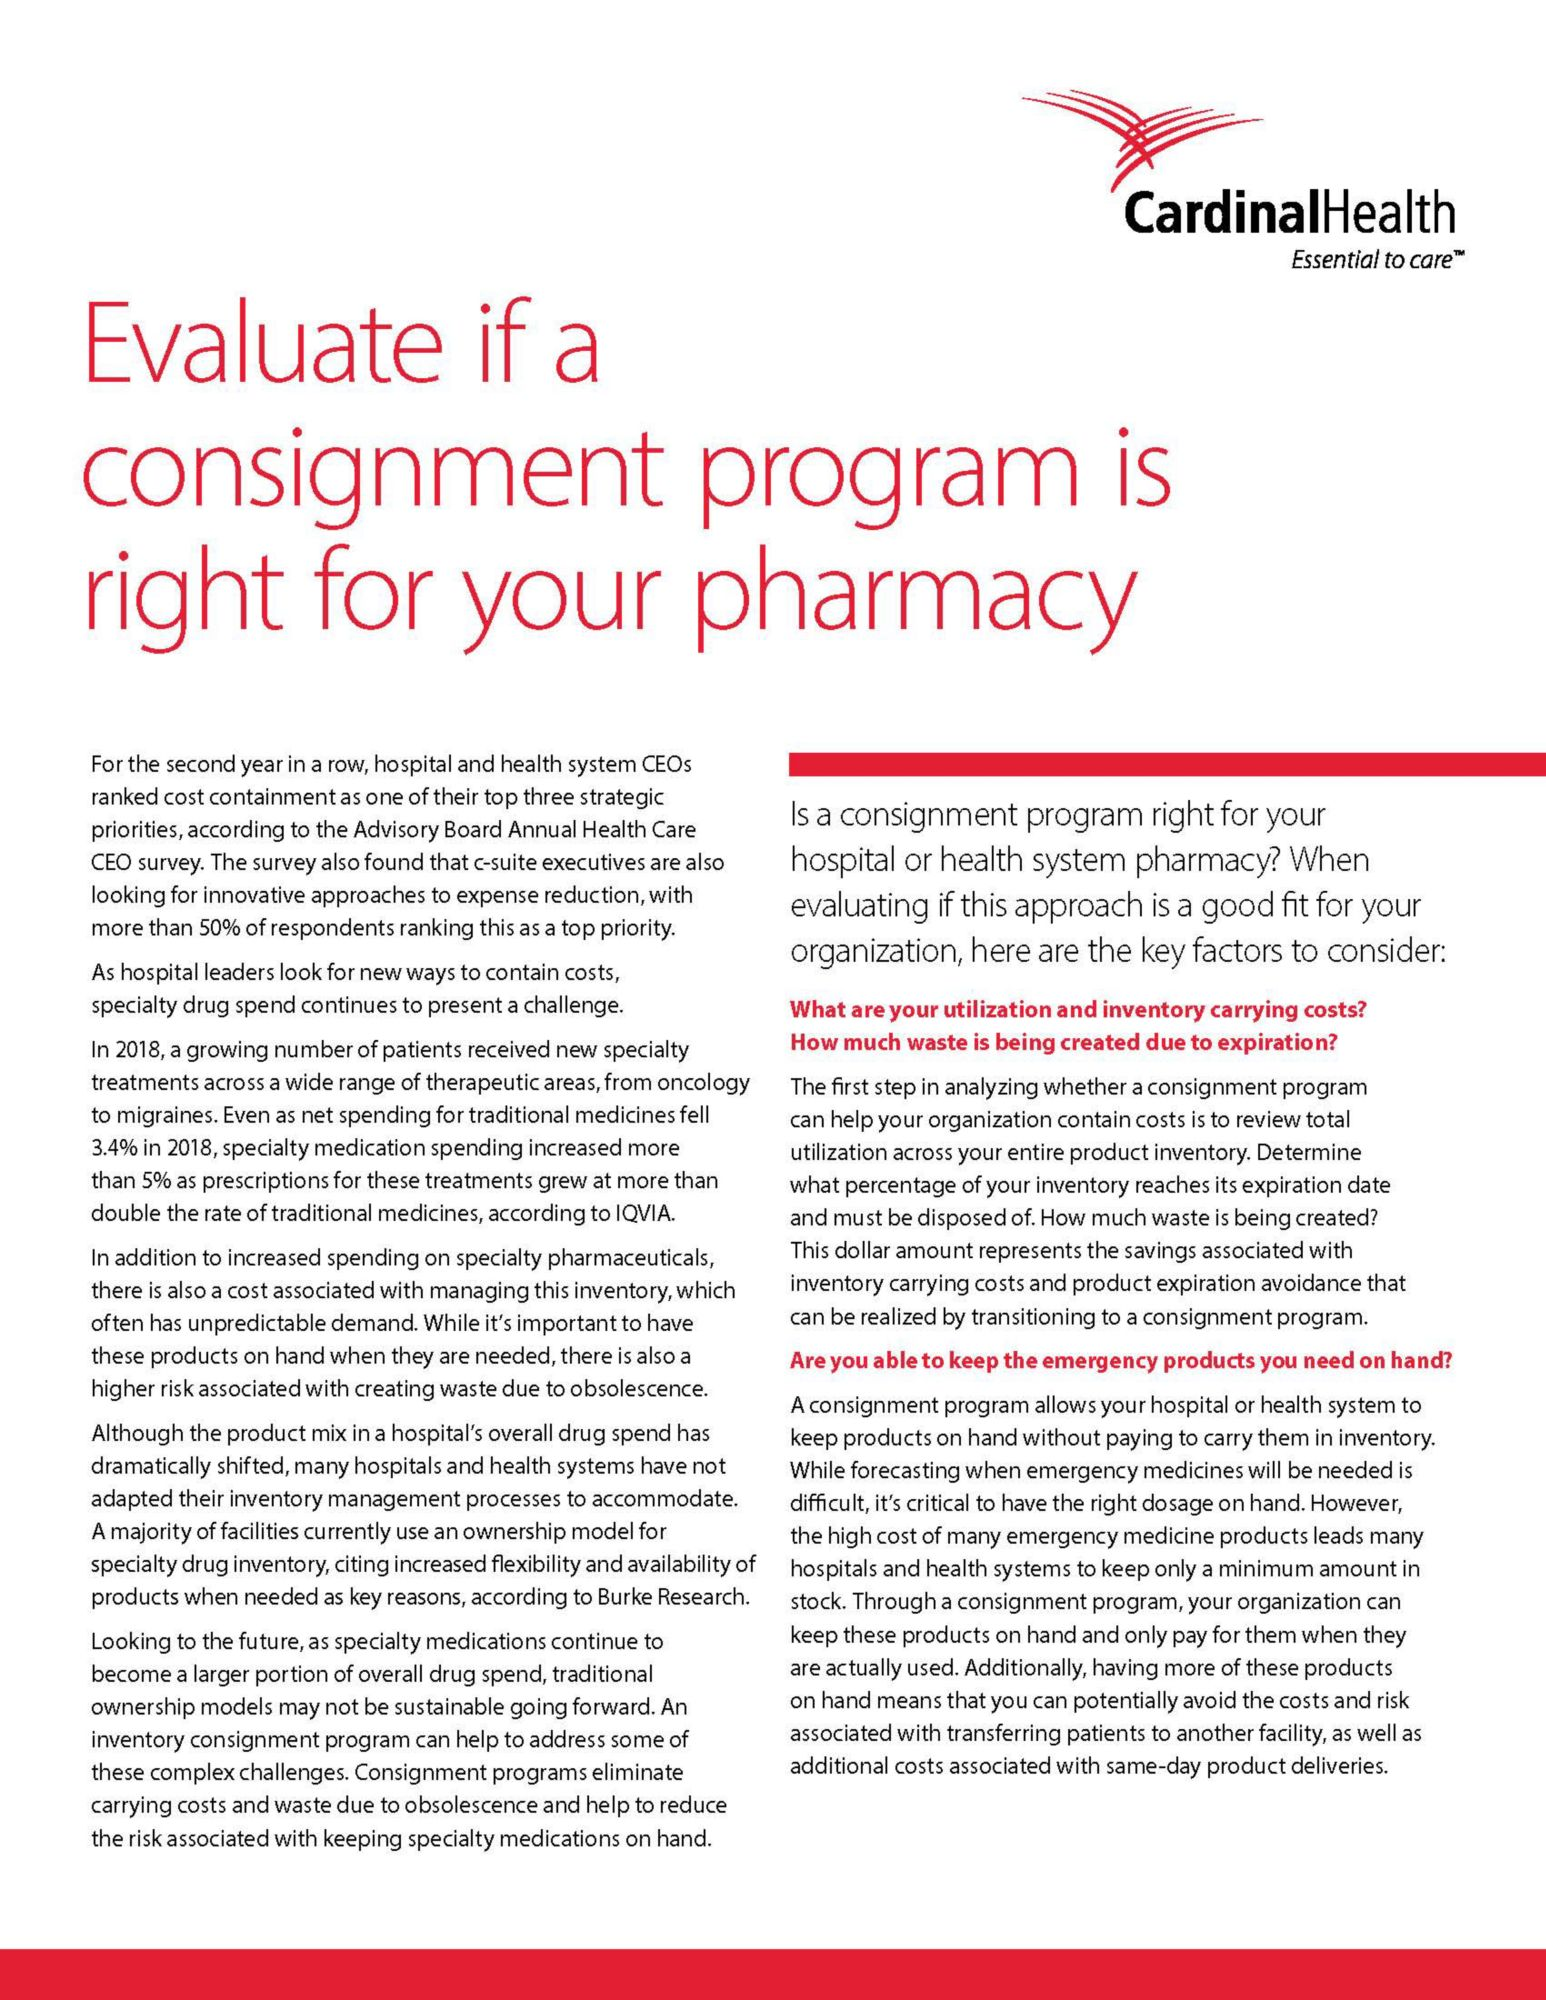 Evaluate if a consignment program is right for your pharmacy.